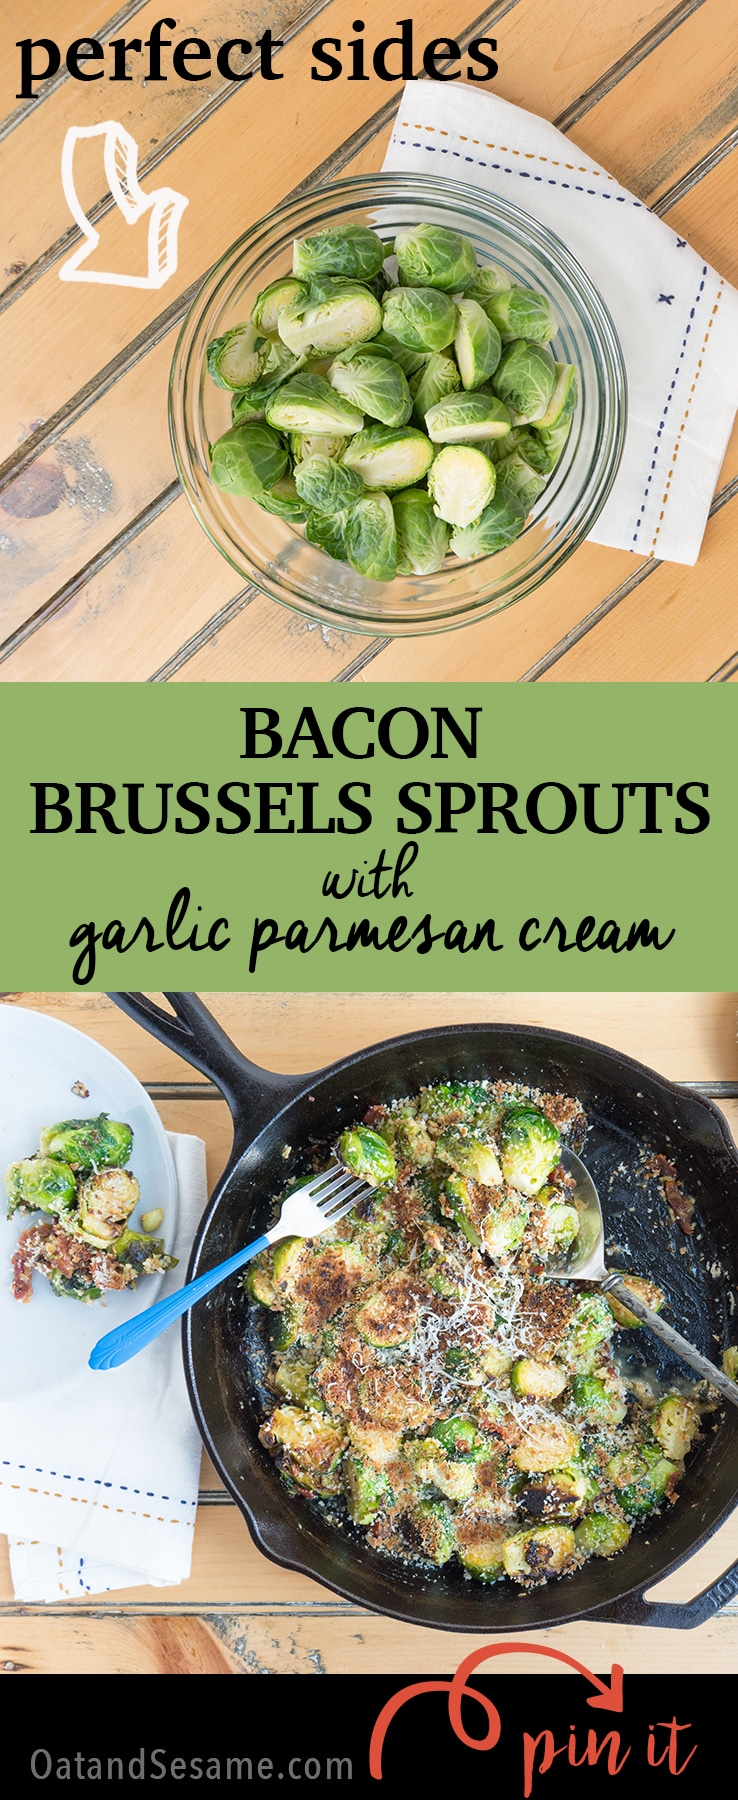 Bacon Brussels Sprouts with Garlic Parmesan Cream. A delicious side dish for Thanksgiving or any Fall gathering. Skillet roasted and done in under 30 min | recipe at OatandSesame.com